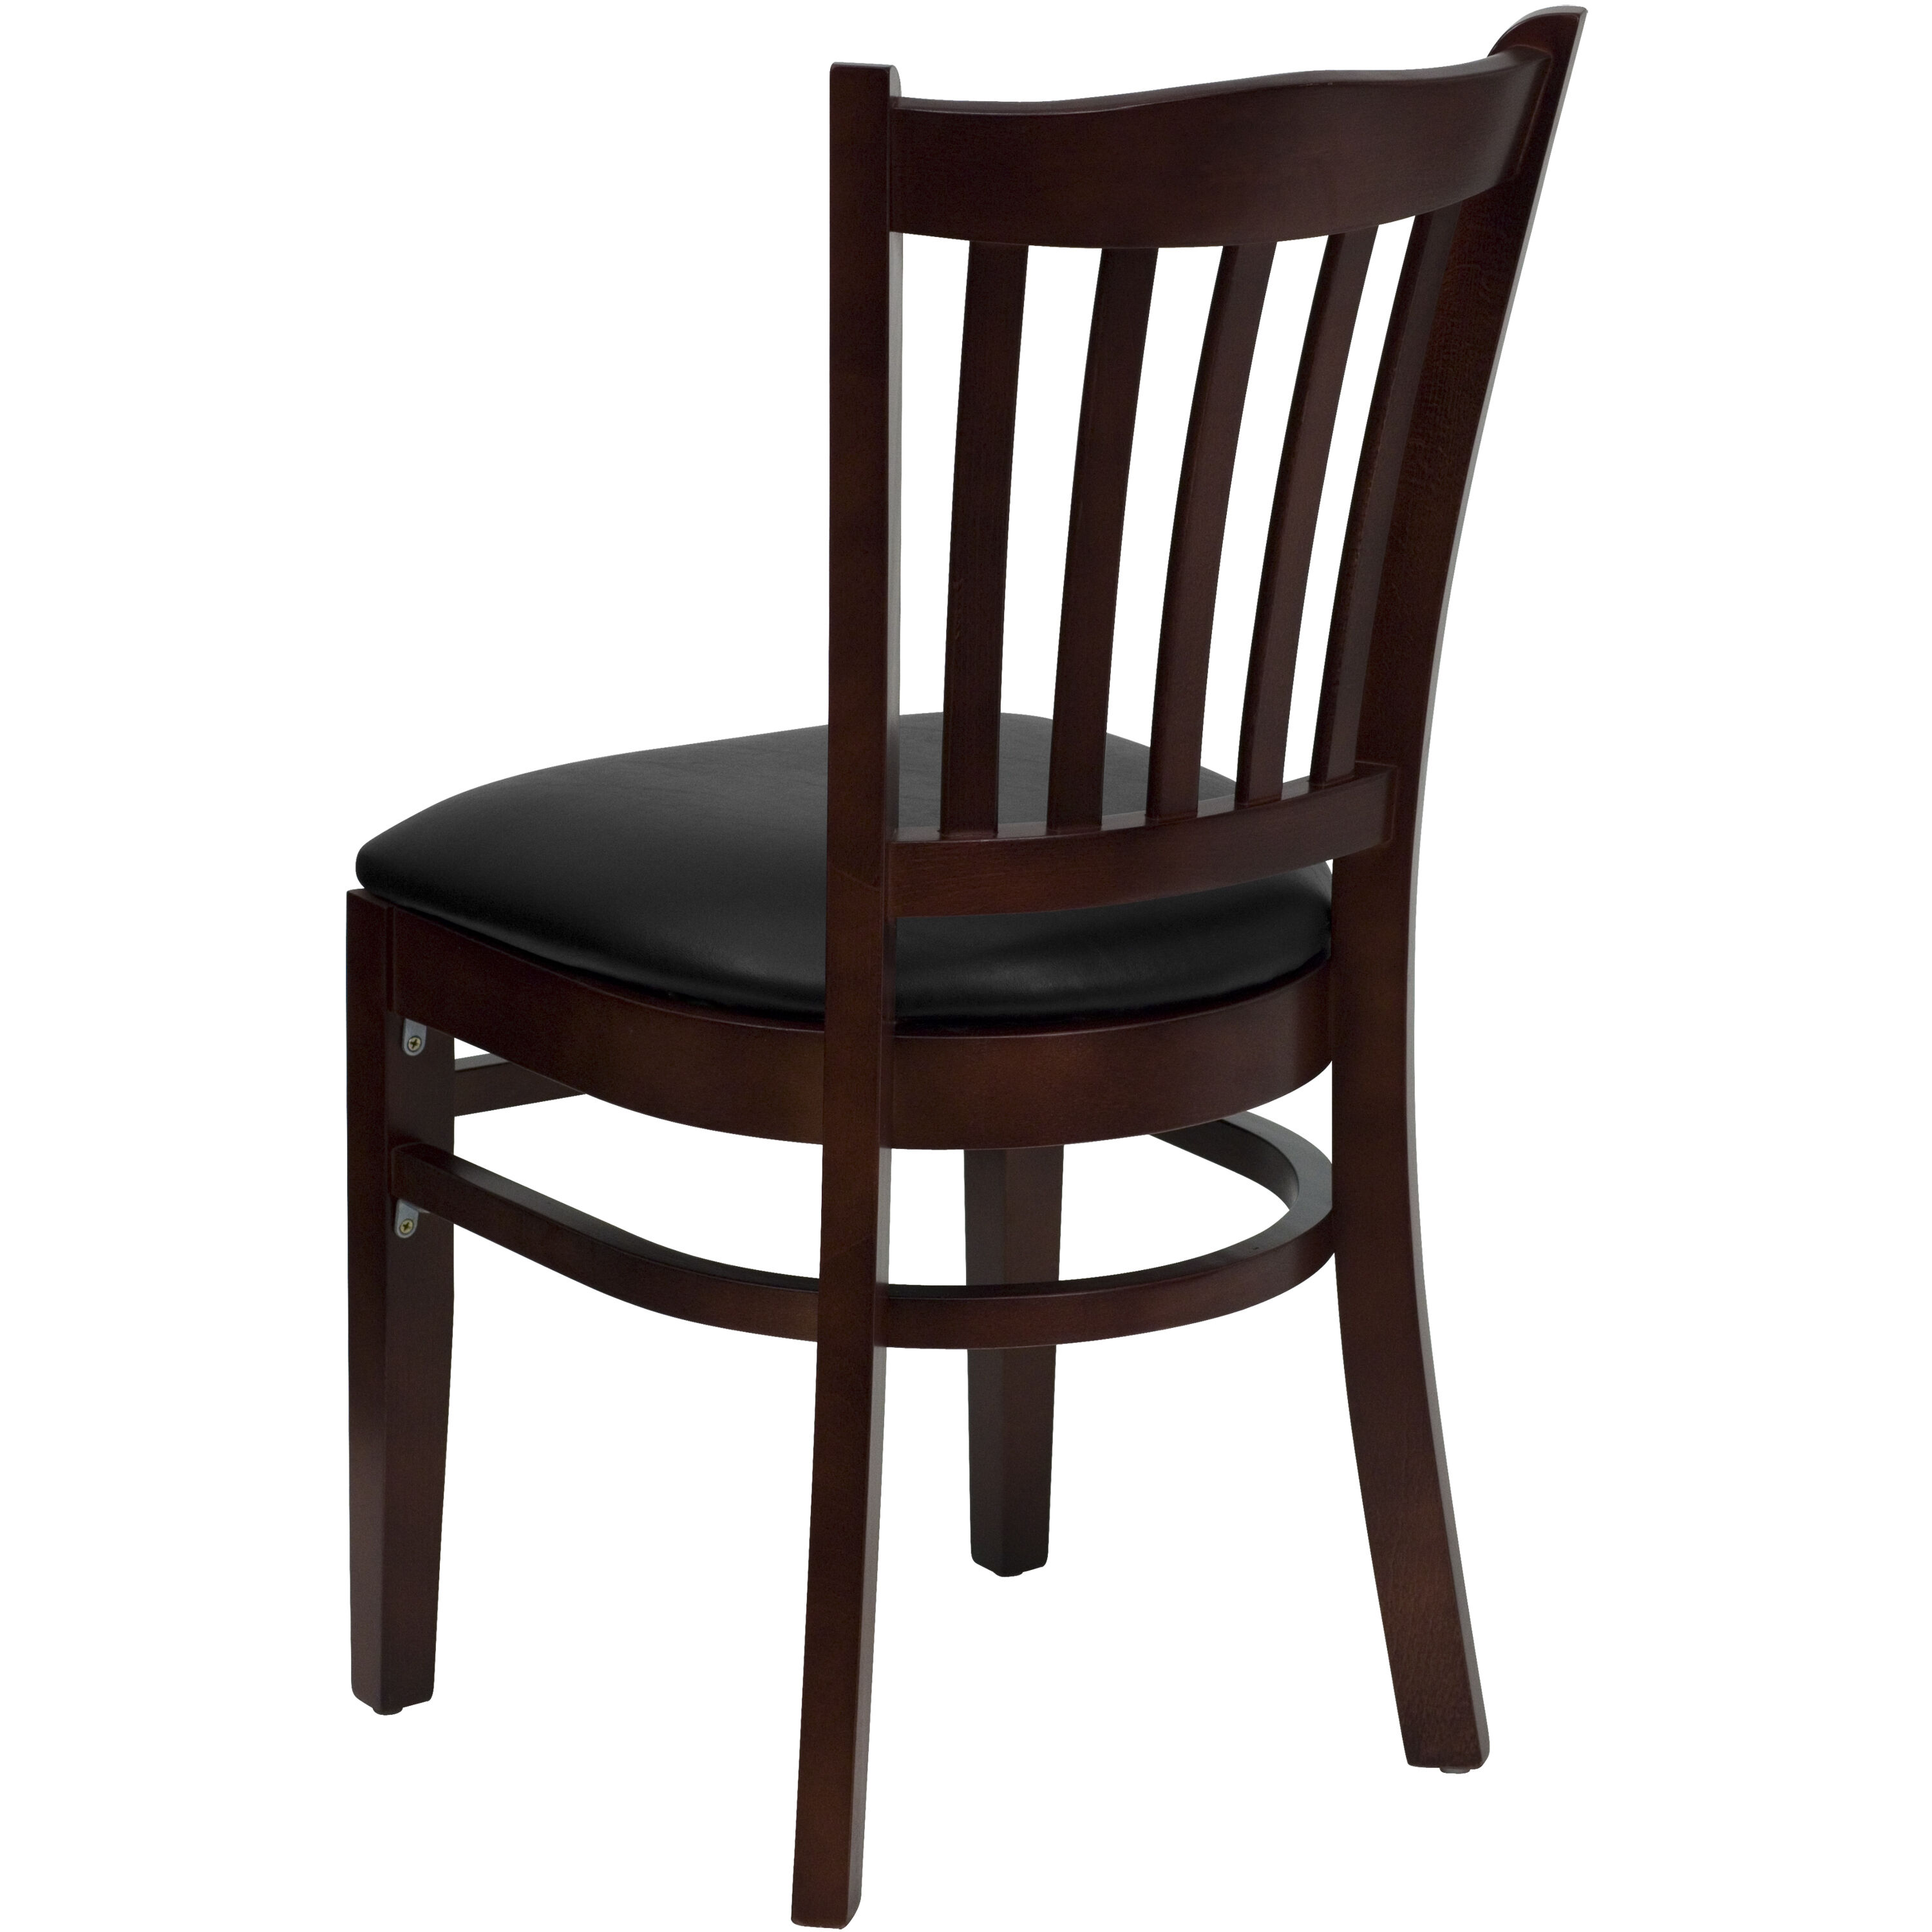 Superieur ... Our Mahogany Finished Vertical Slat Back Wooden Restaurant Chair With  Black Vinyl Seat Is On Sale ...